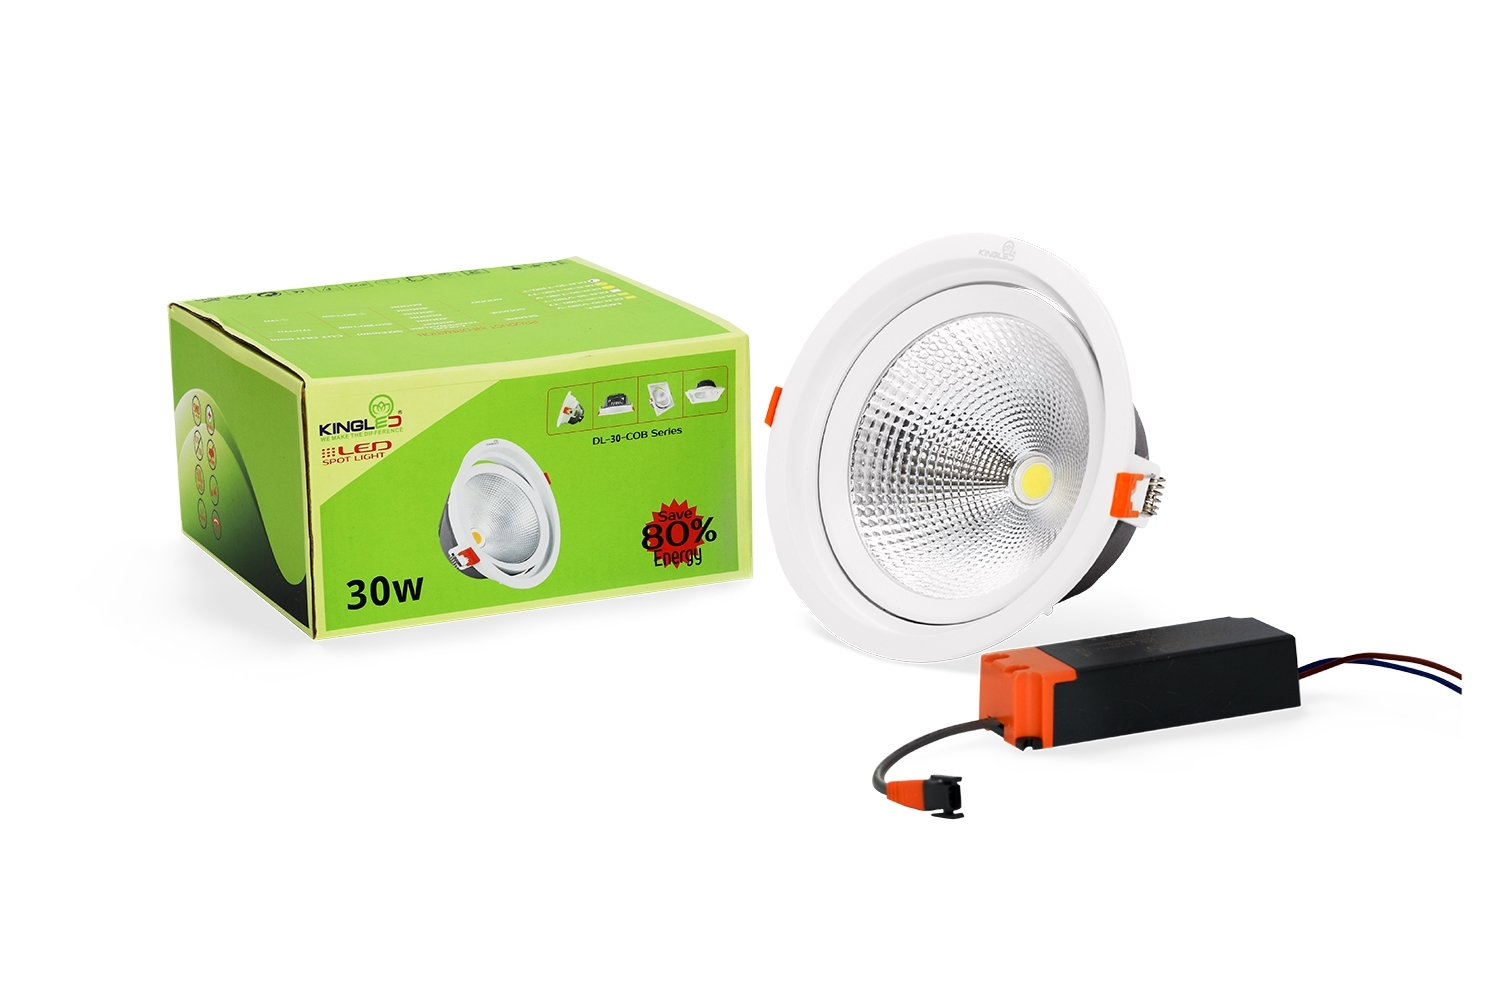 Đèn dowlight Kingled spot light DLR-30-T180 tròn